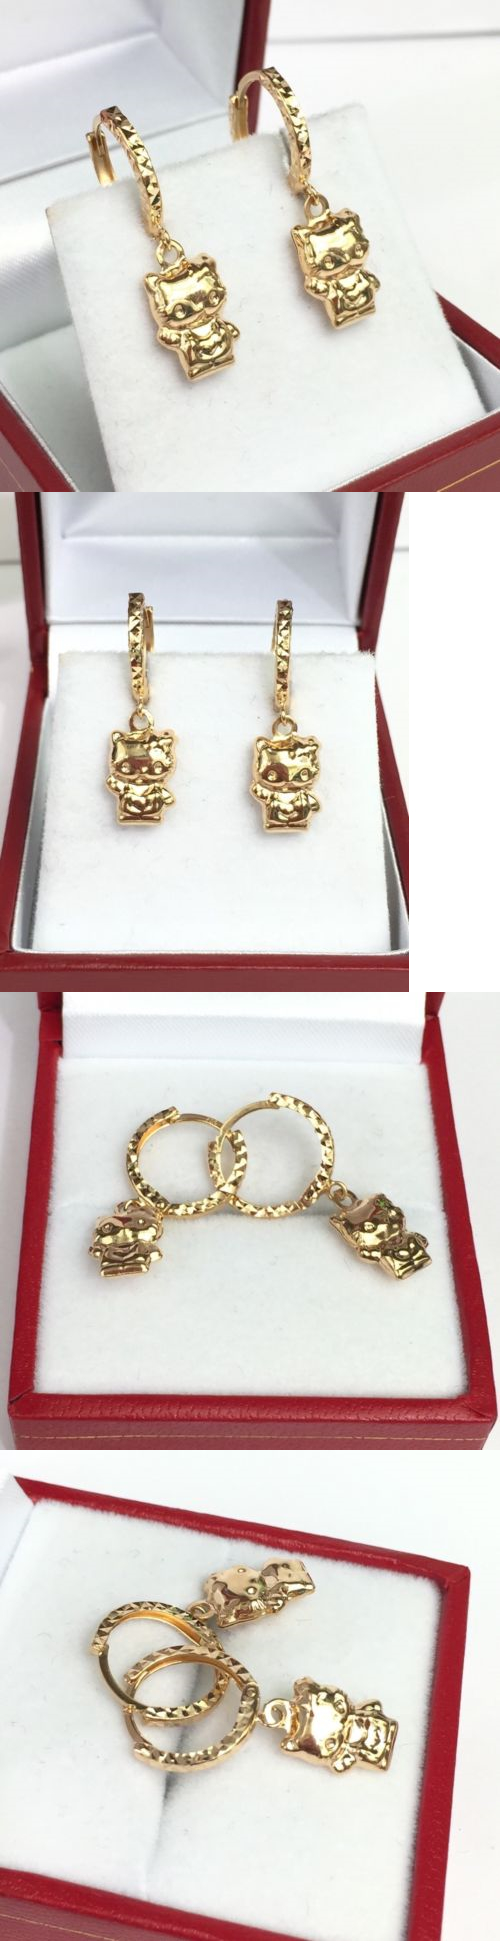 Precious Metal without Stones 164319: 18K Solid Yellow Gold Hello ...